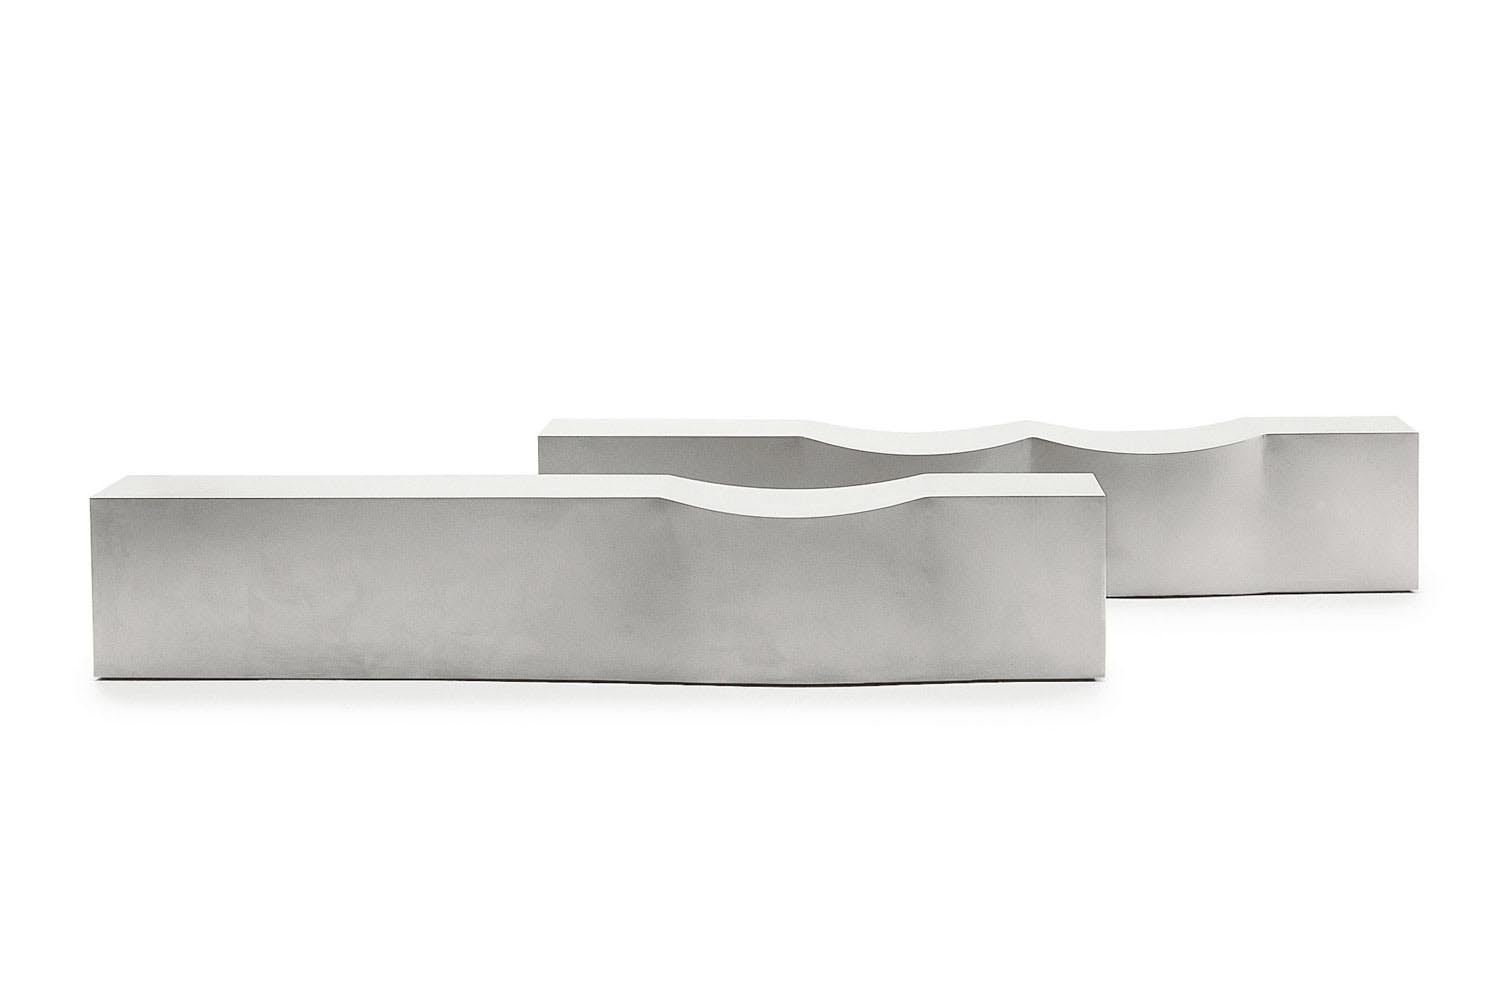 Dip & Double Dip Bench by Chris Howker for B&B Italia Project